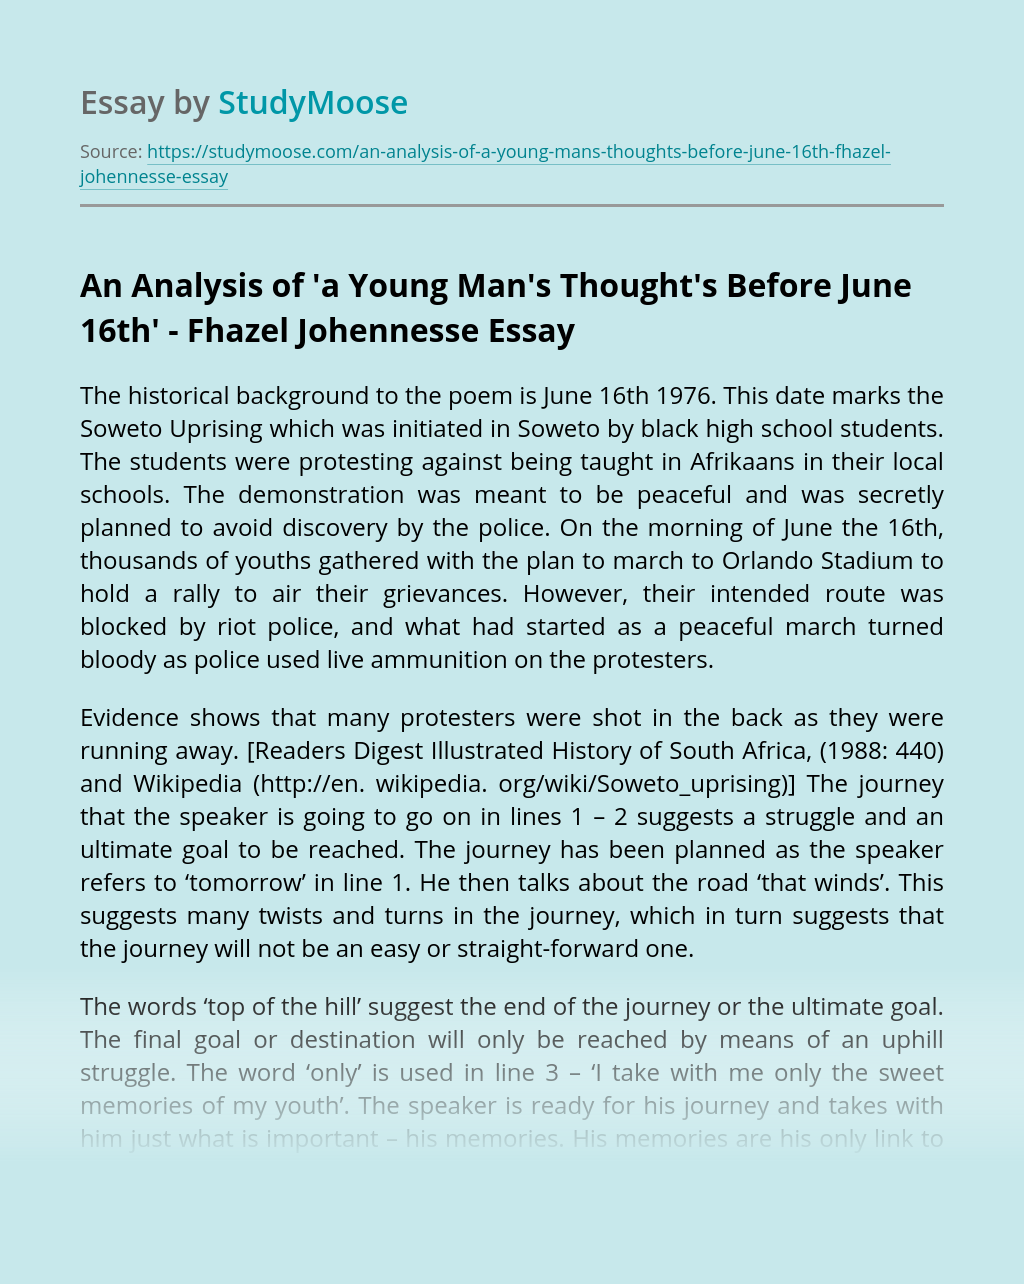 An Analysis of 'a Young Man's Thought's Before June 16th' – Fhazel Johennesse